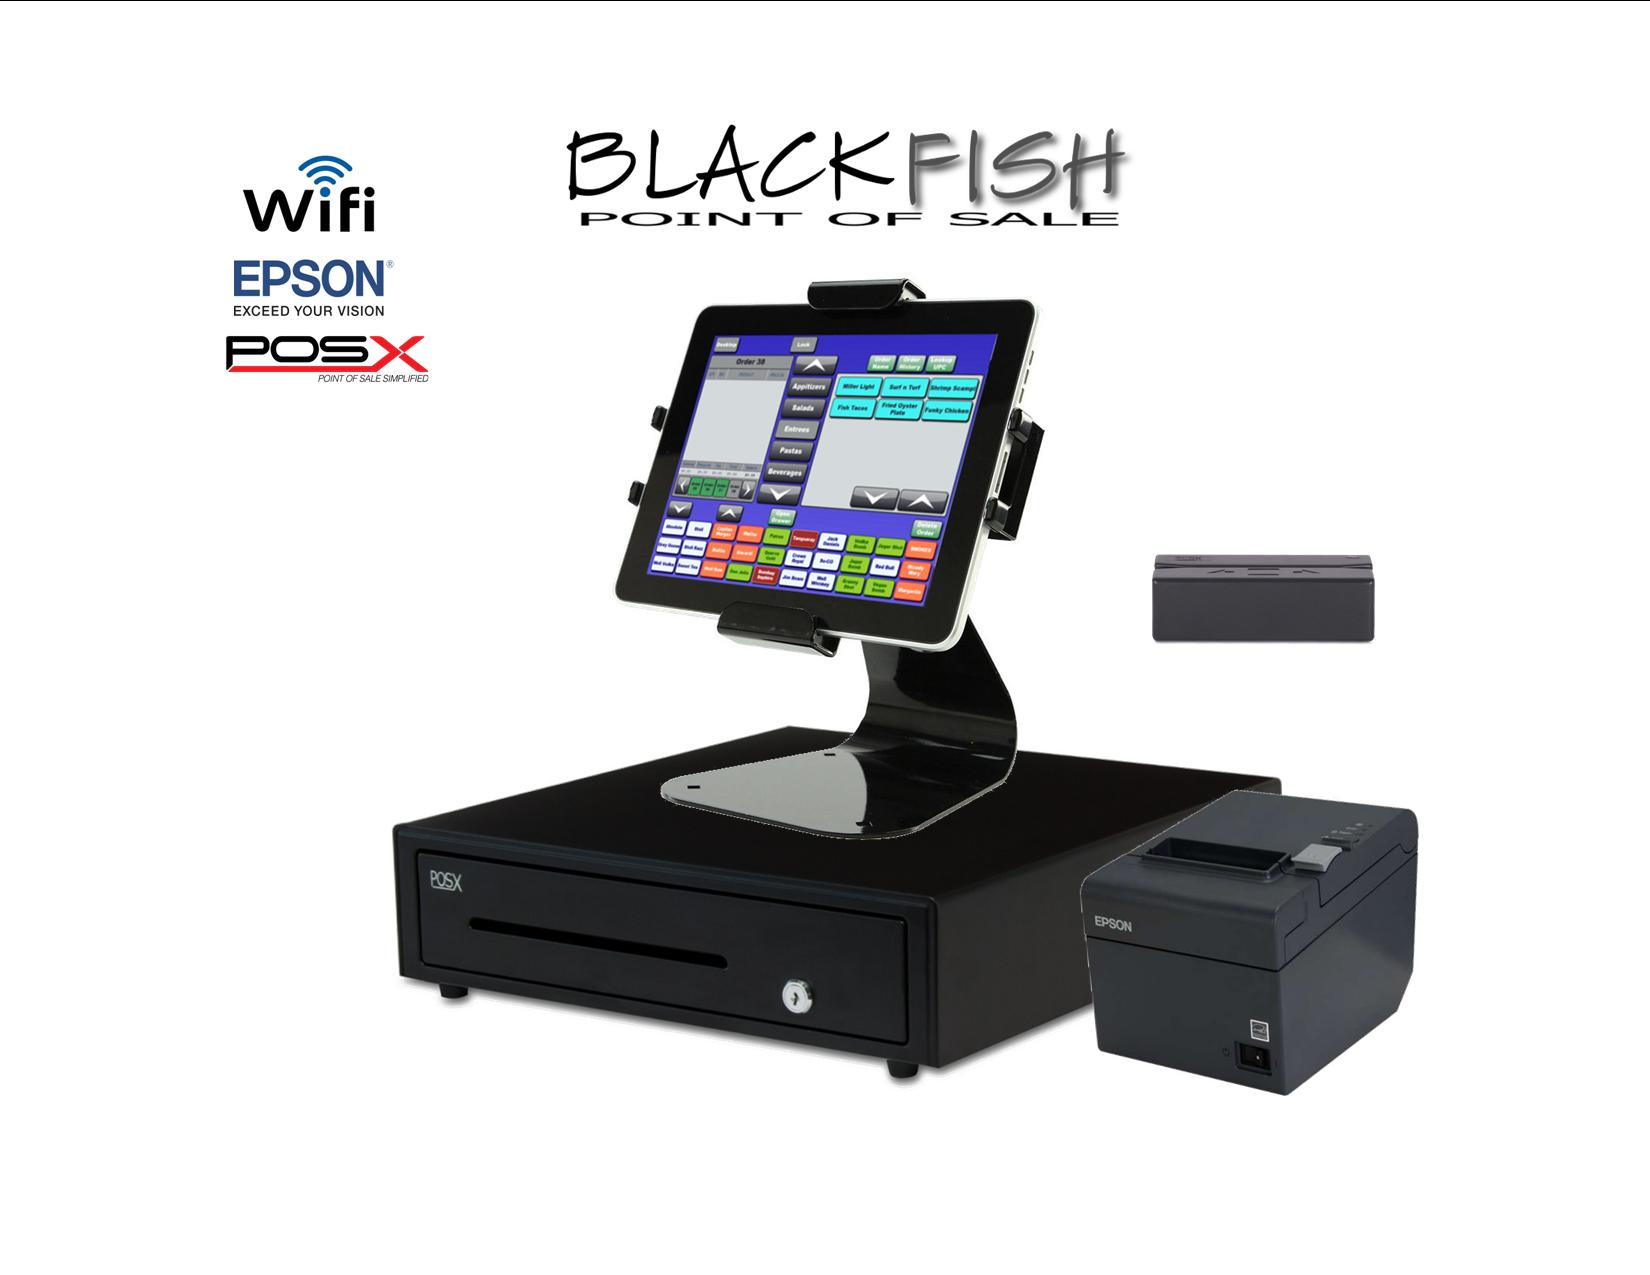 1 Station Tablet Bar/Restaurant POS System